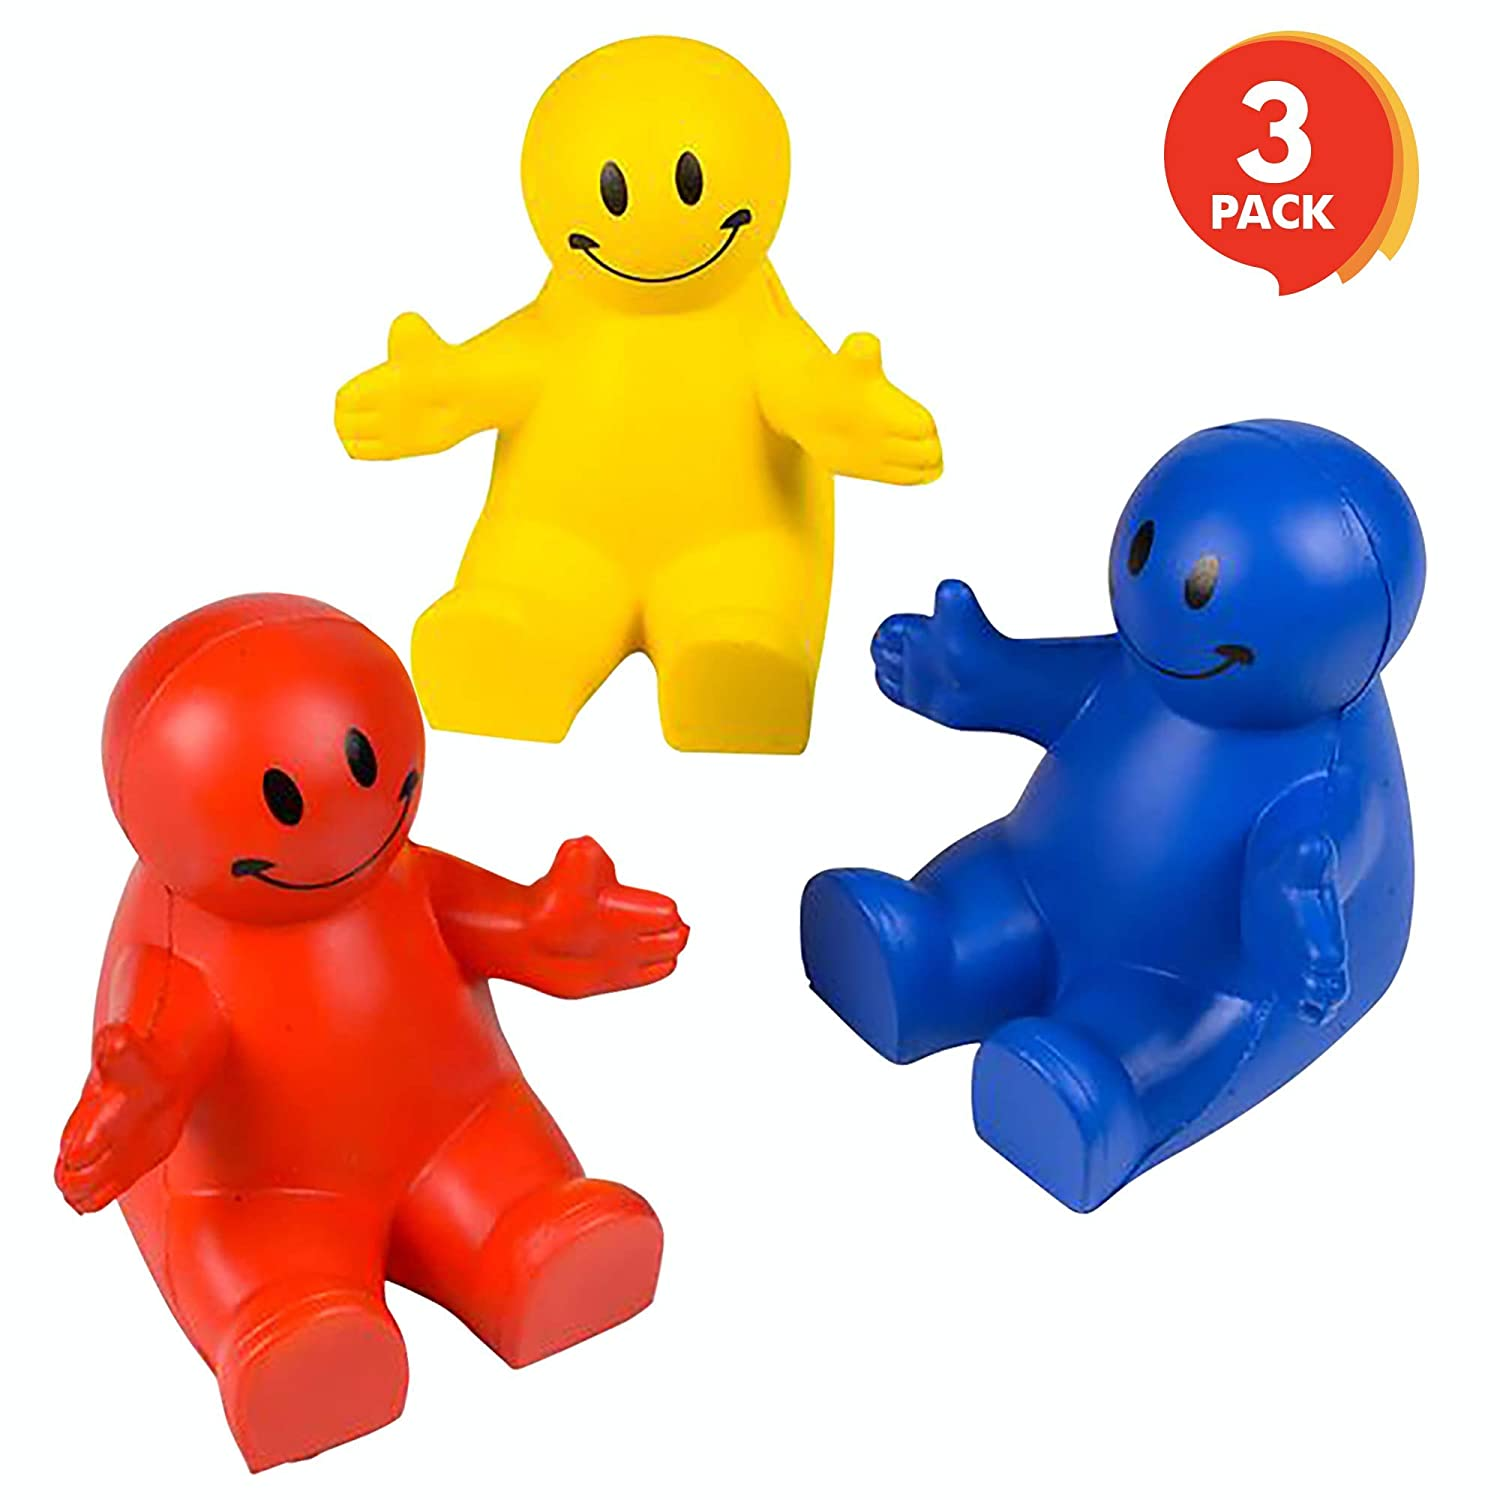 ArtCreativity 4 Inch Squeezable Smiley Phone Holder, 3 Pack, 2-in-1 Smartphone Stand, Squeeze Stress Relief Fidget Toy for Kids & Adults, Desk Decoration, Party Favor, Office Gift, Red-Blue-Yellow